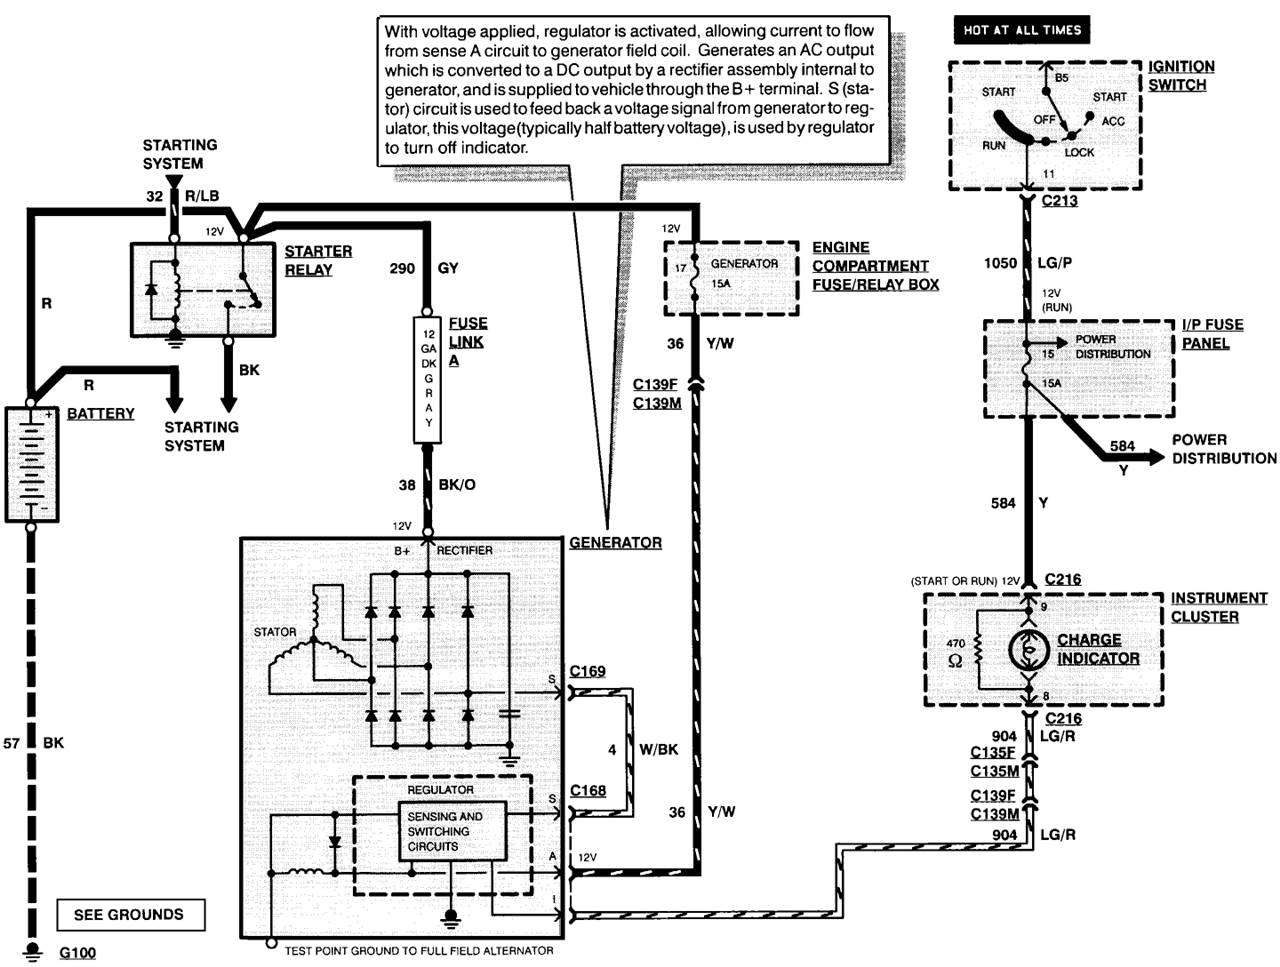 ford 6g alternator wiring best part of wiring diagramford 6g alternator wiring online wiring diagram